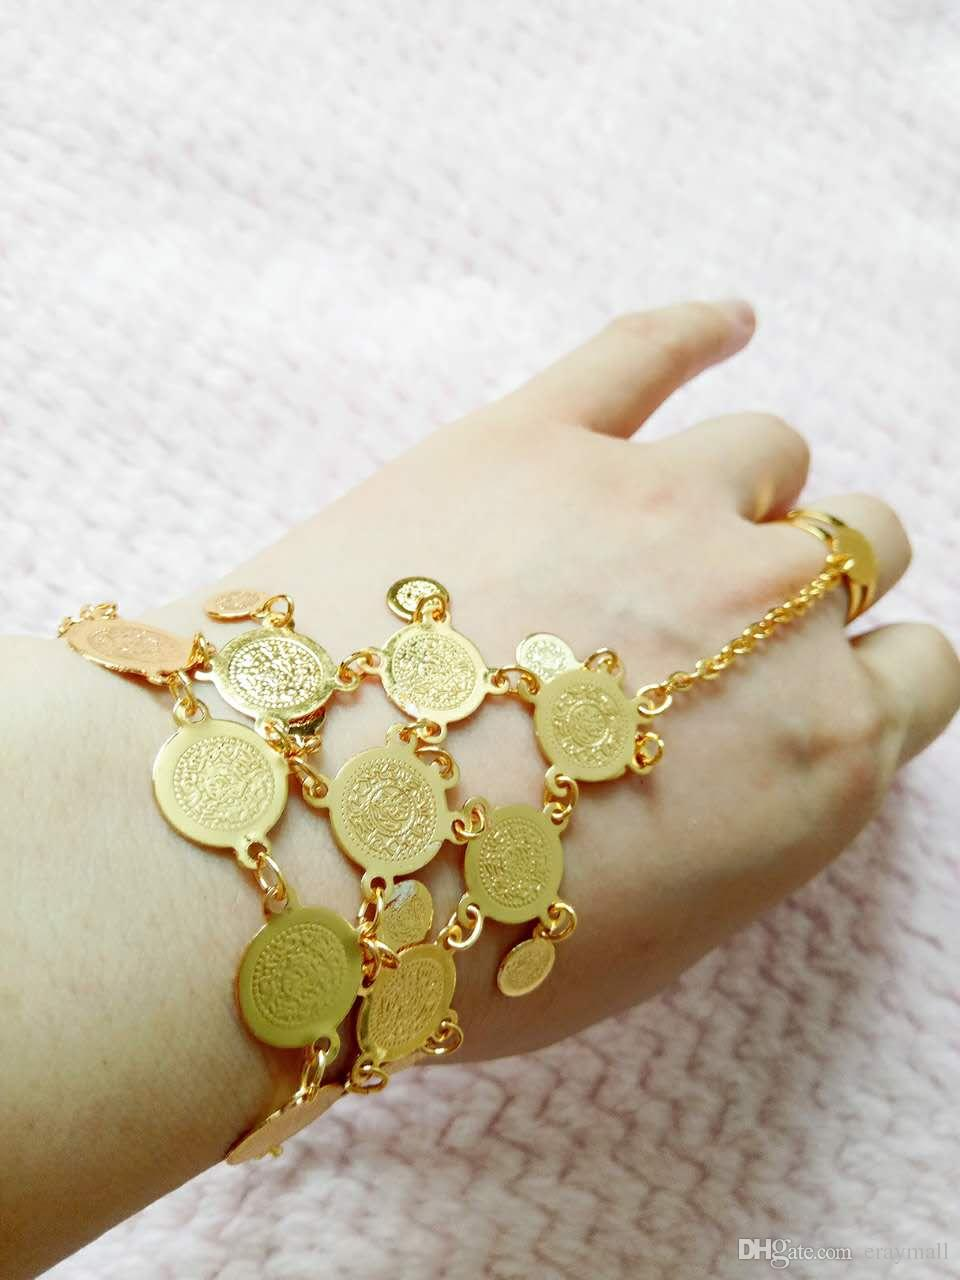 18 k gold plating bracelets with finger ring for women and extender chain free shipping